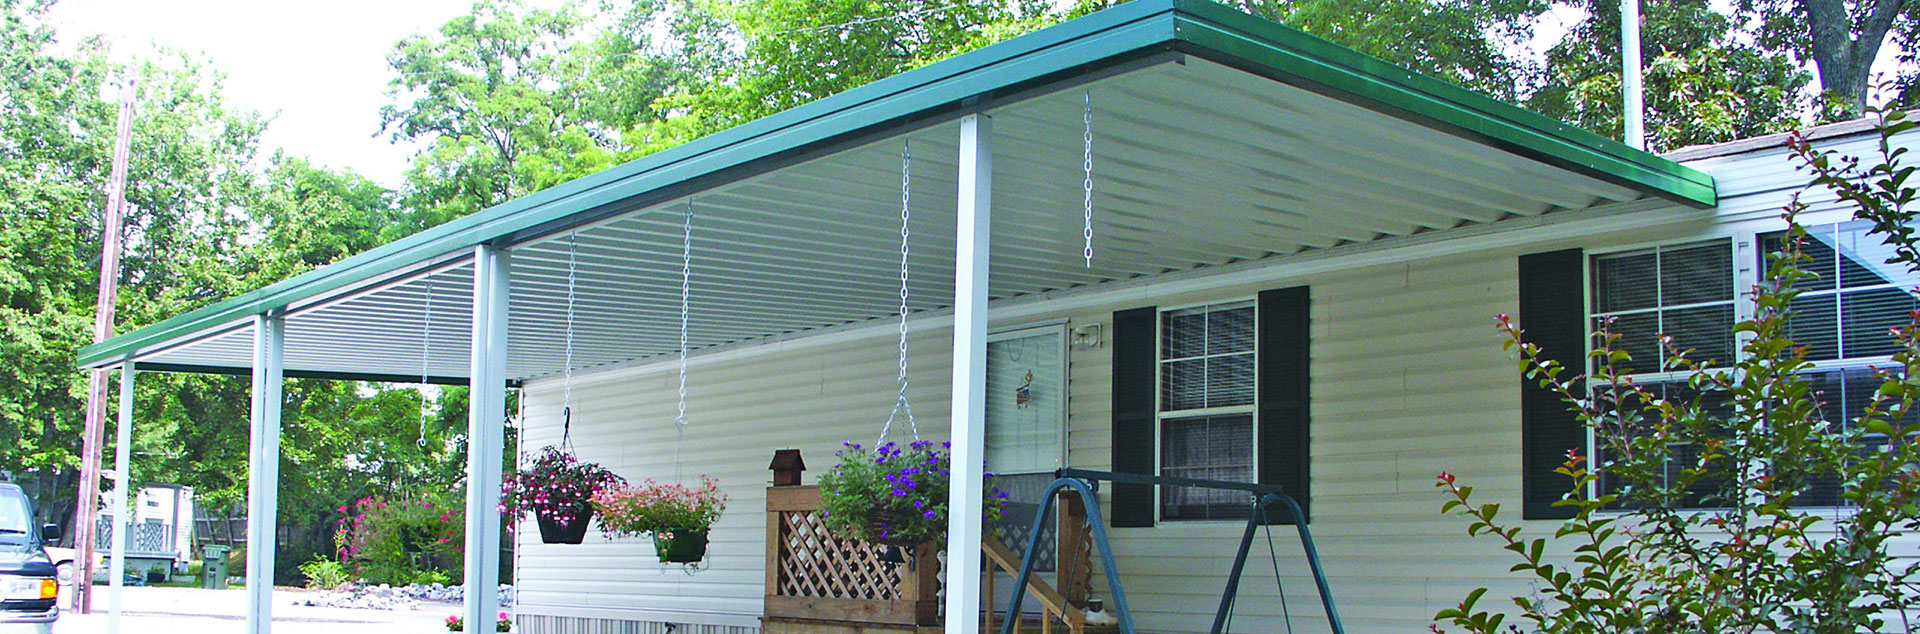 general awnings - 28 images - general awning independence